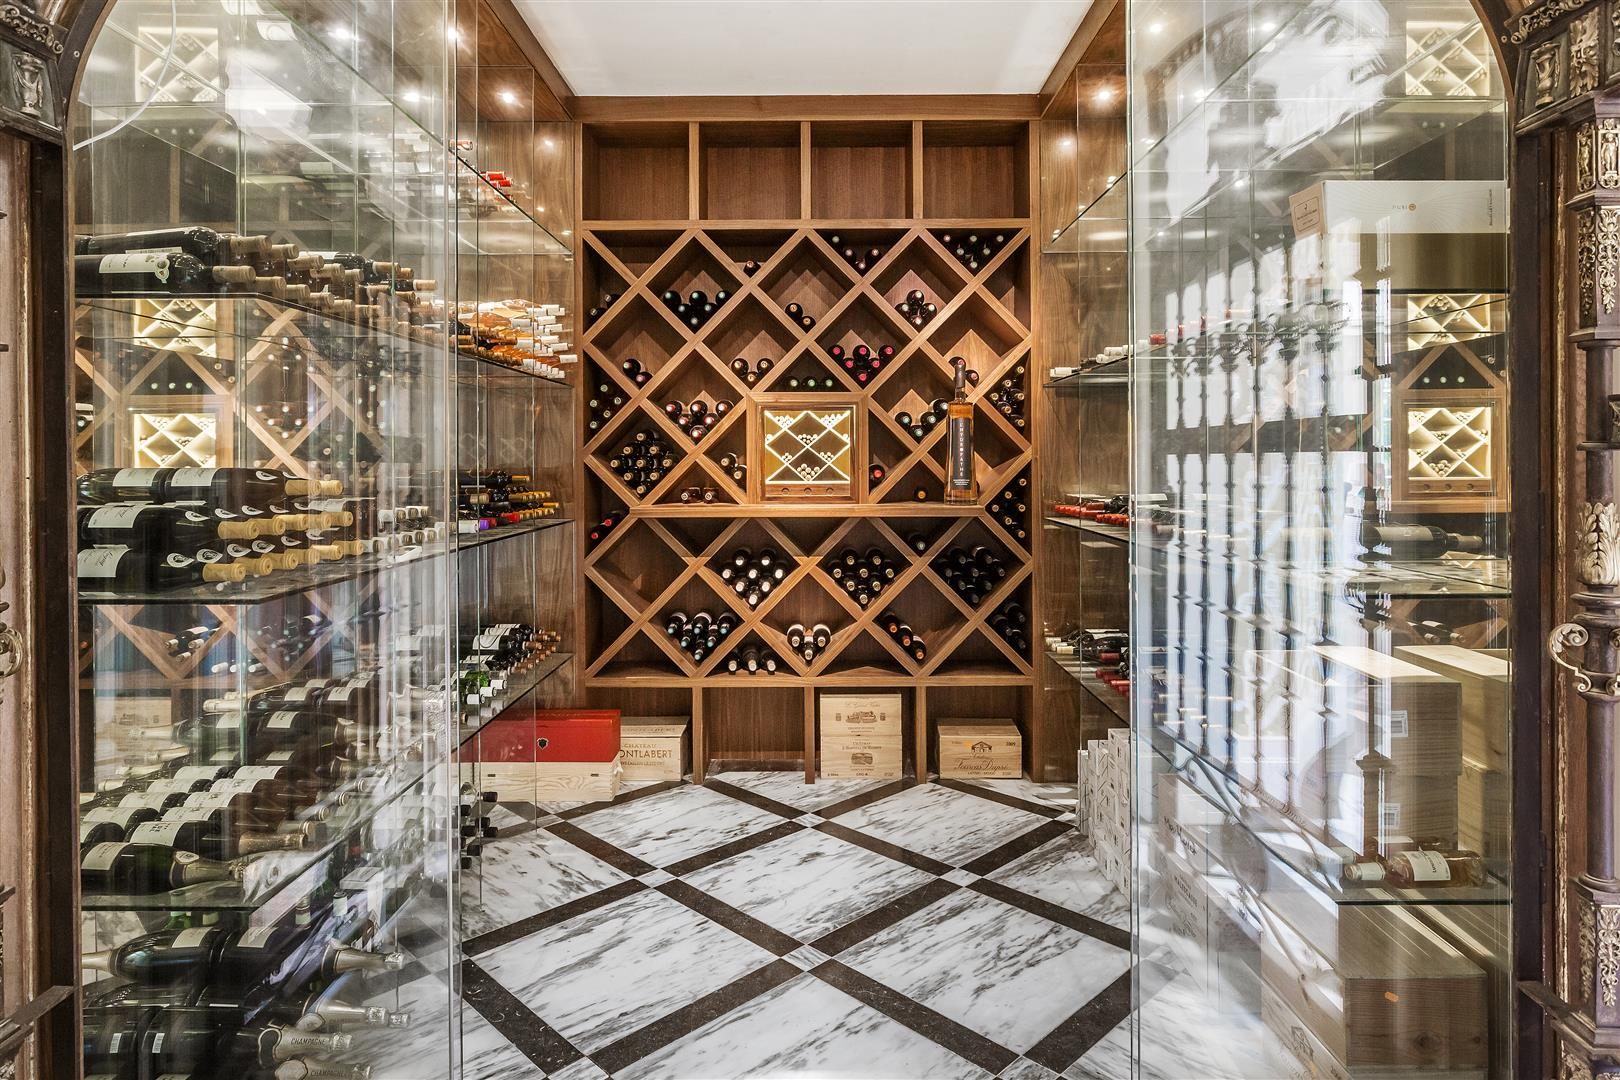 Photo of the interior of a luxury wine cellar